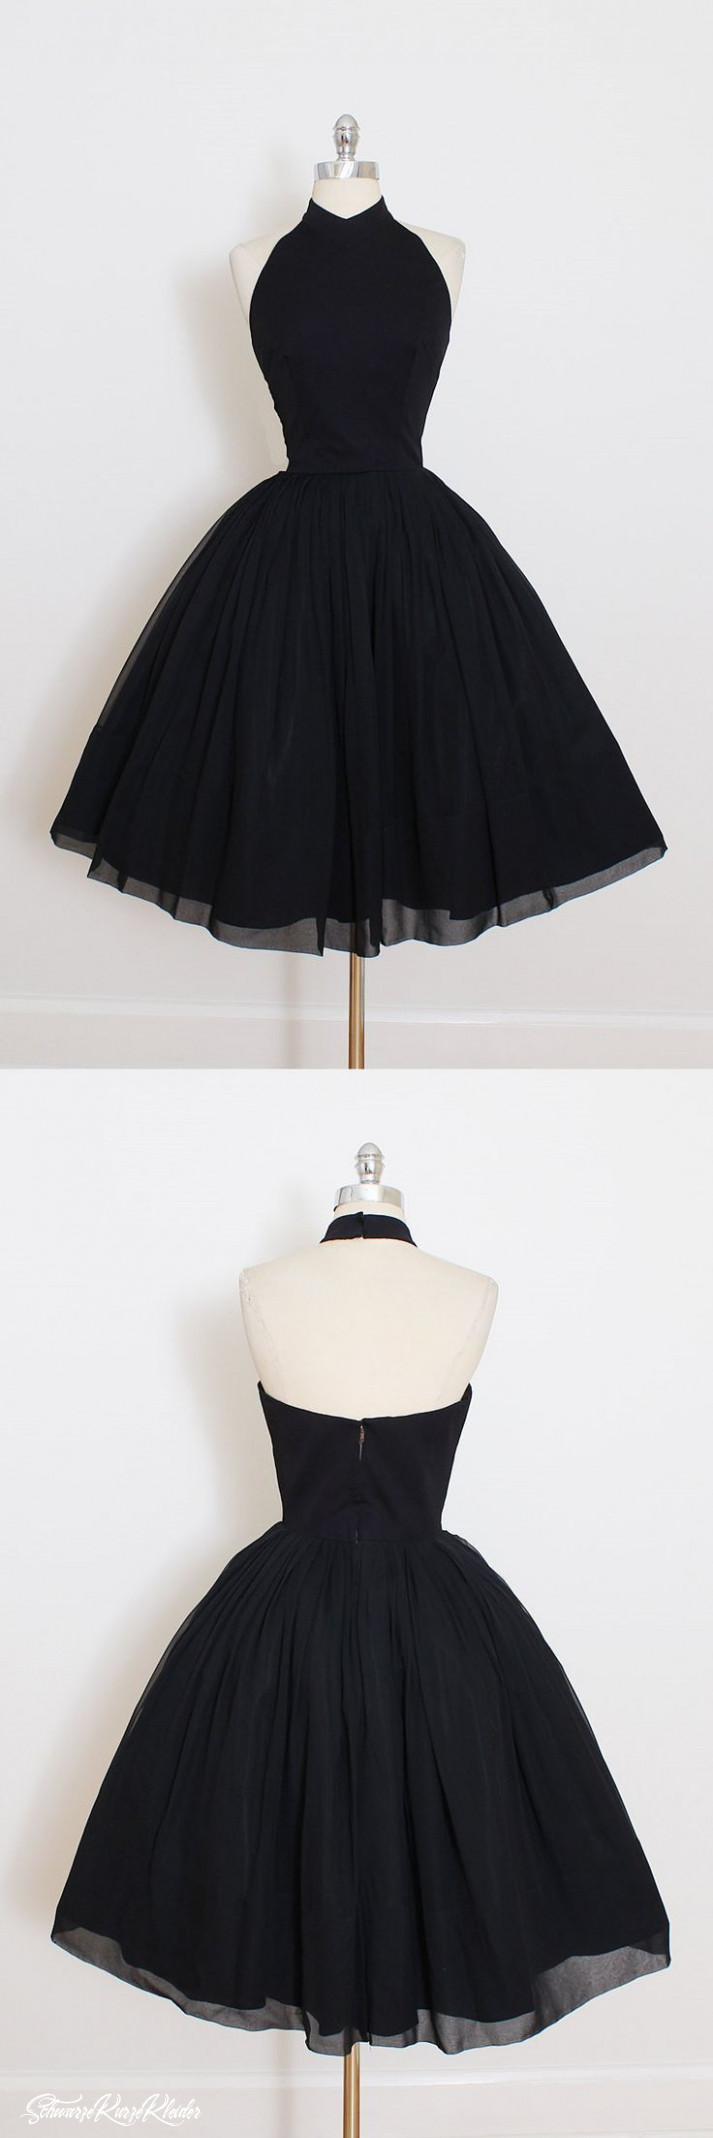 Little Black Dress, 12 Short Black Prom Dress, Vintage Prom